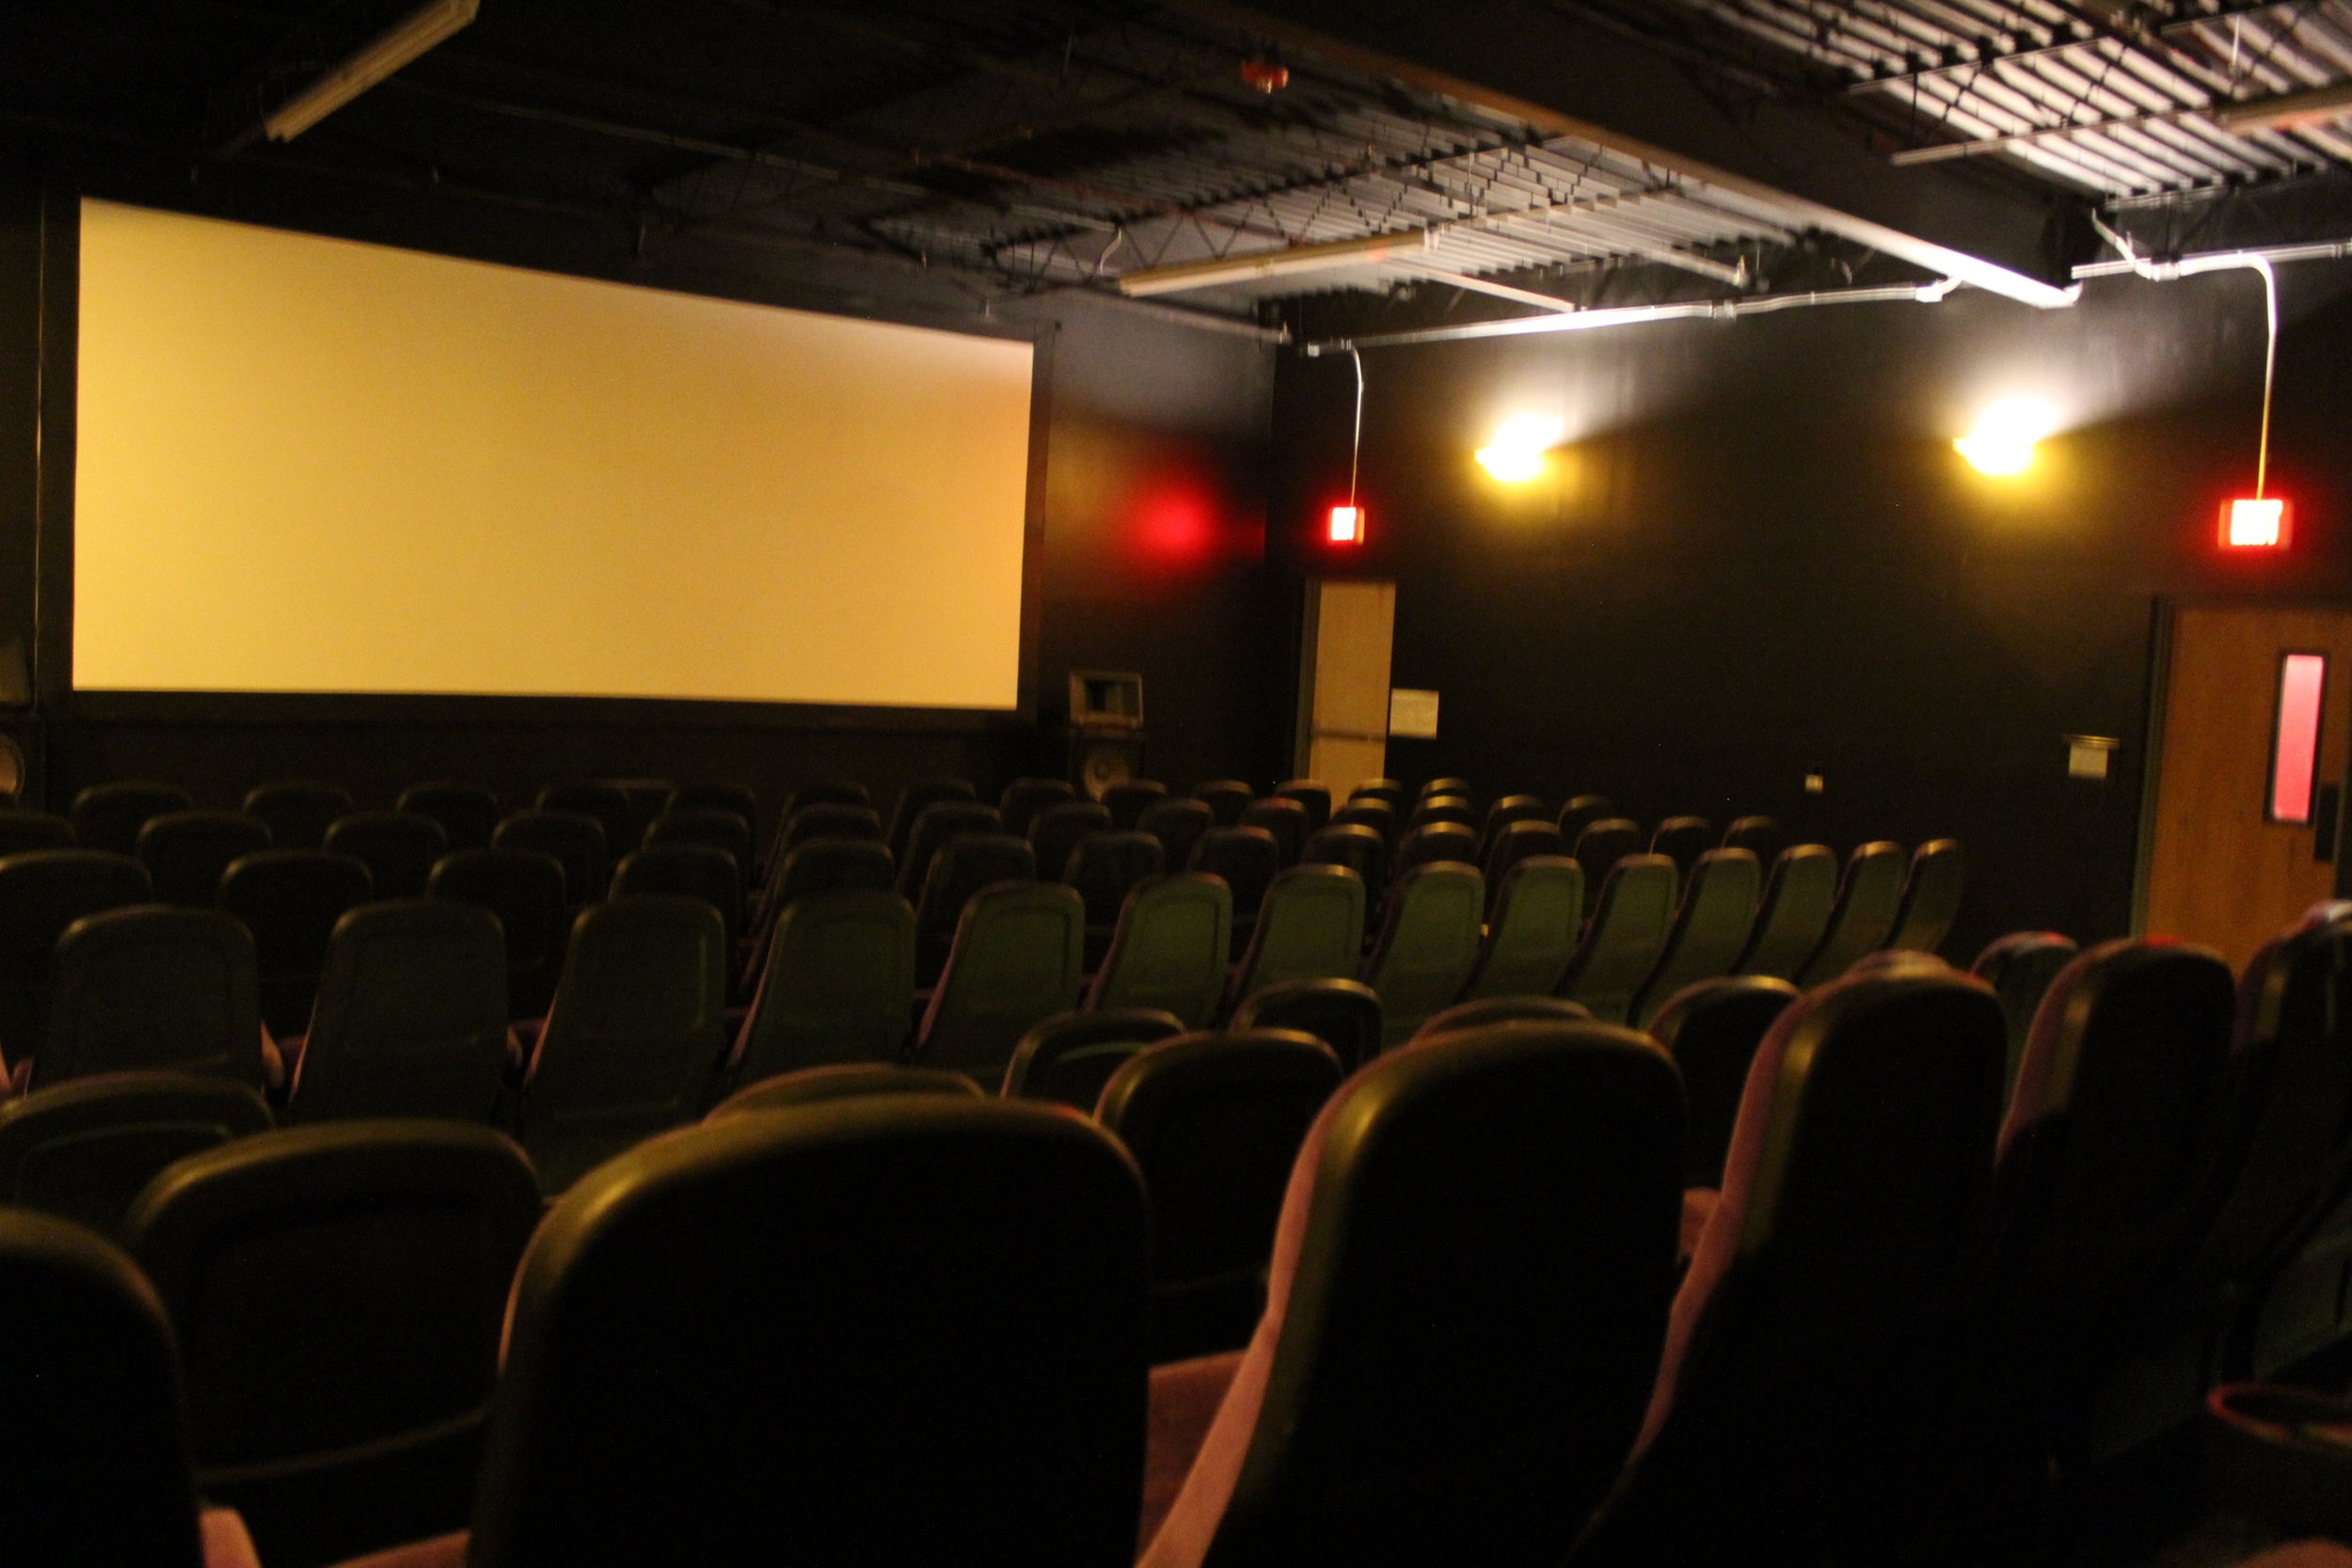 picture of screen 1 with all theater seats